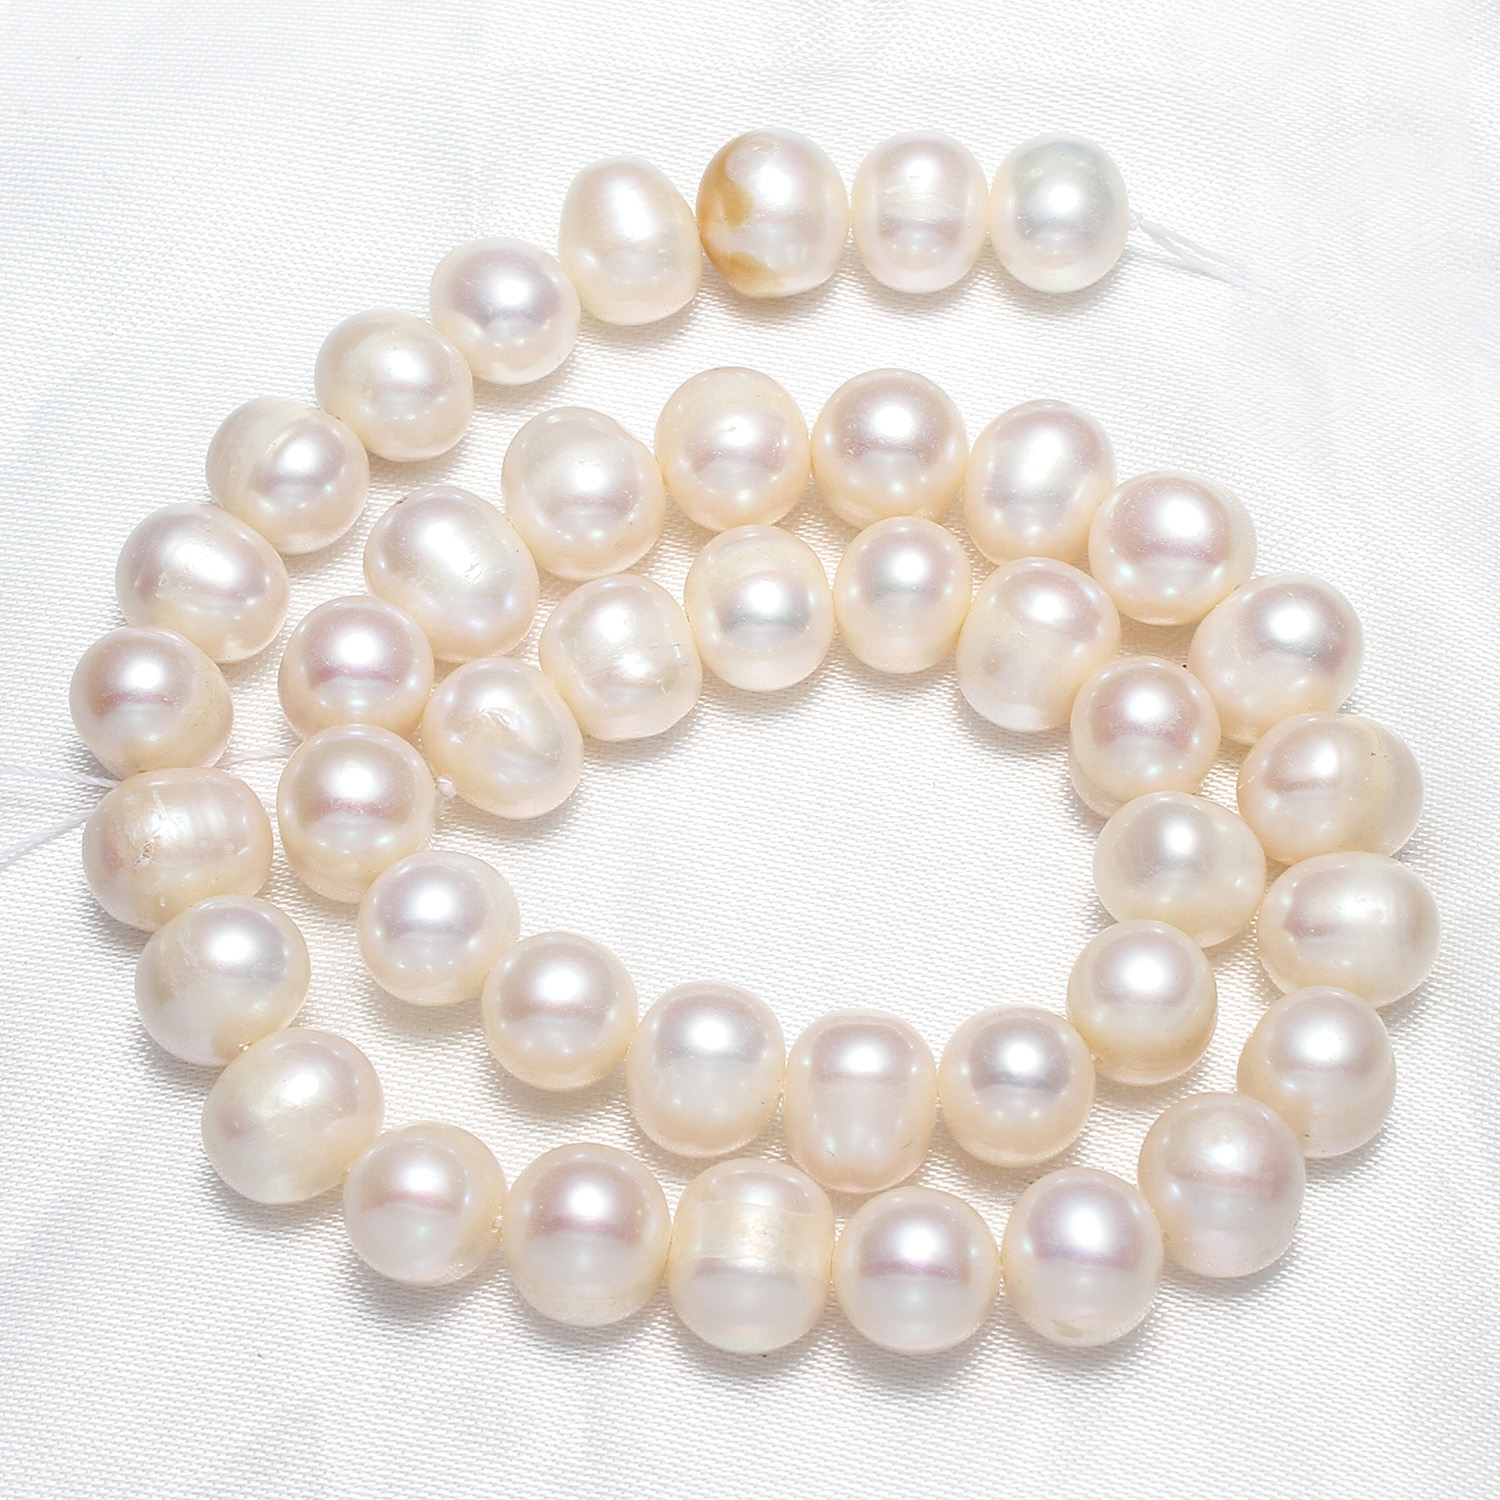 Cultured Round Freshwater Pearl Beads Natural 9-10mm Approx 0.8mm Sold Per Approx 14.5 Inch Approx 15.5 Inch Strand